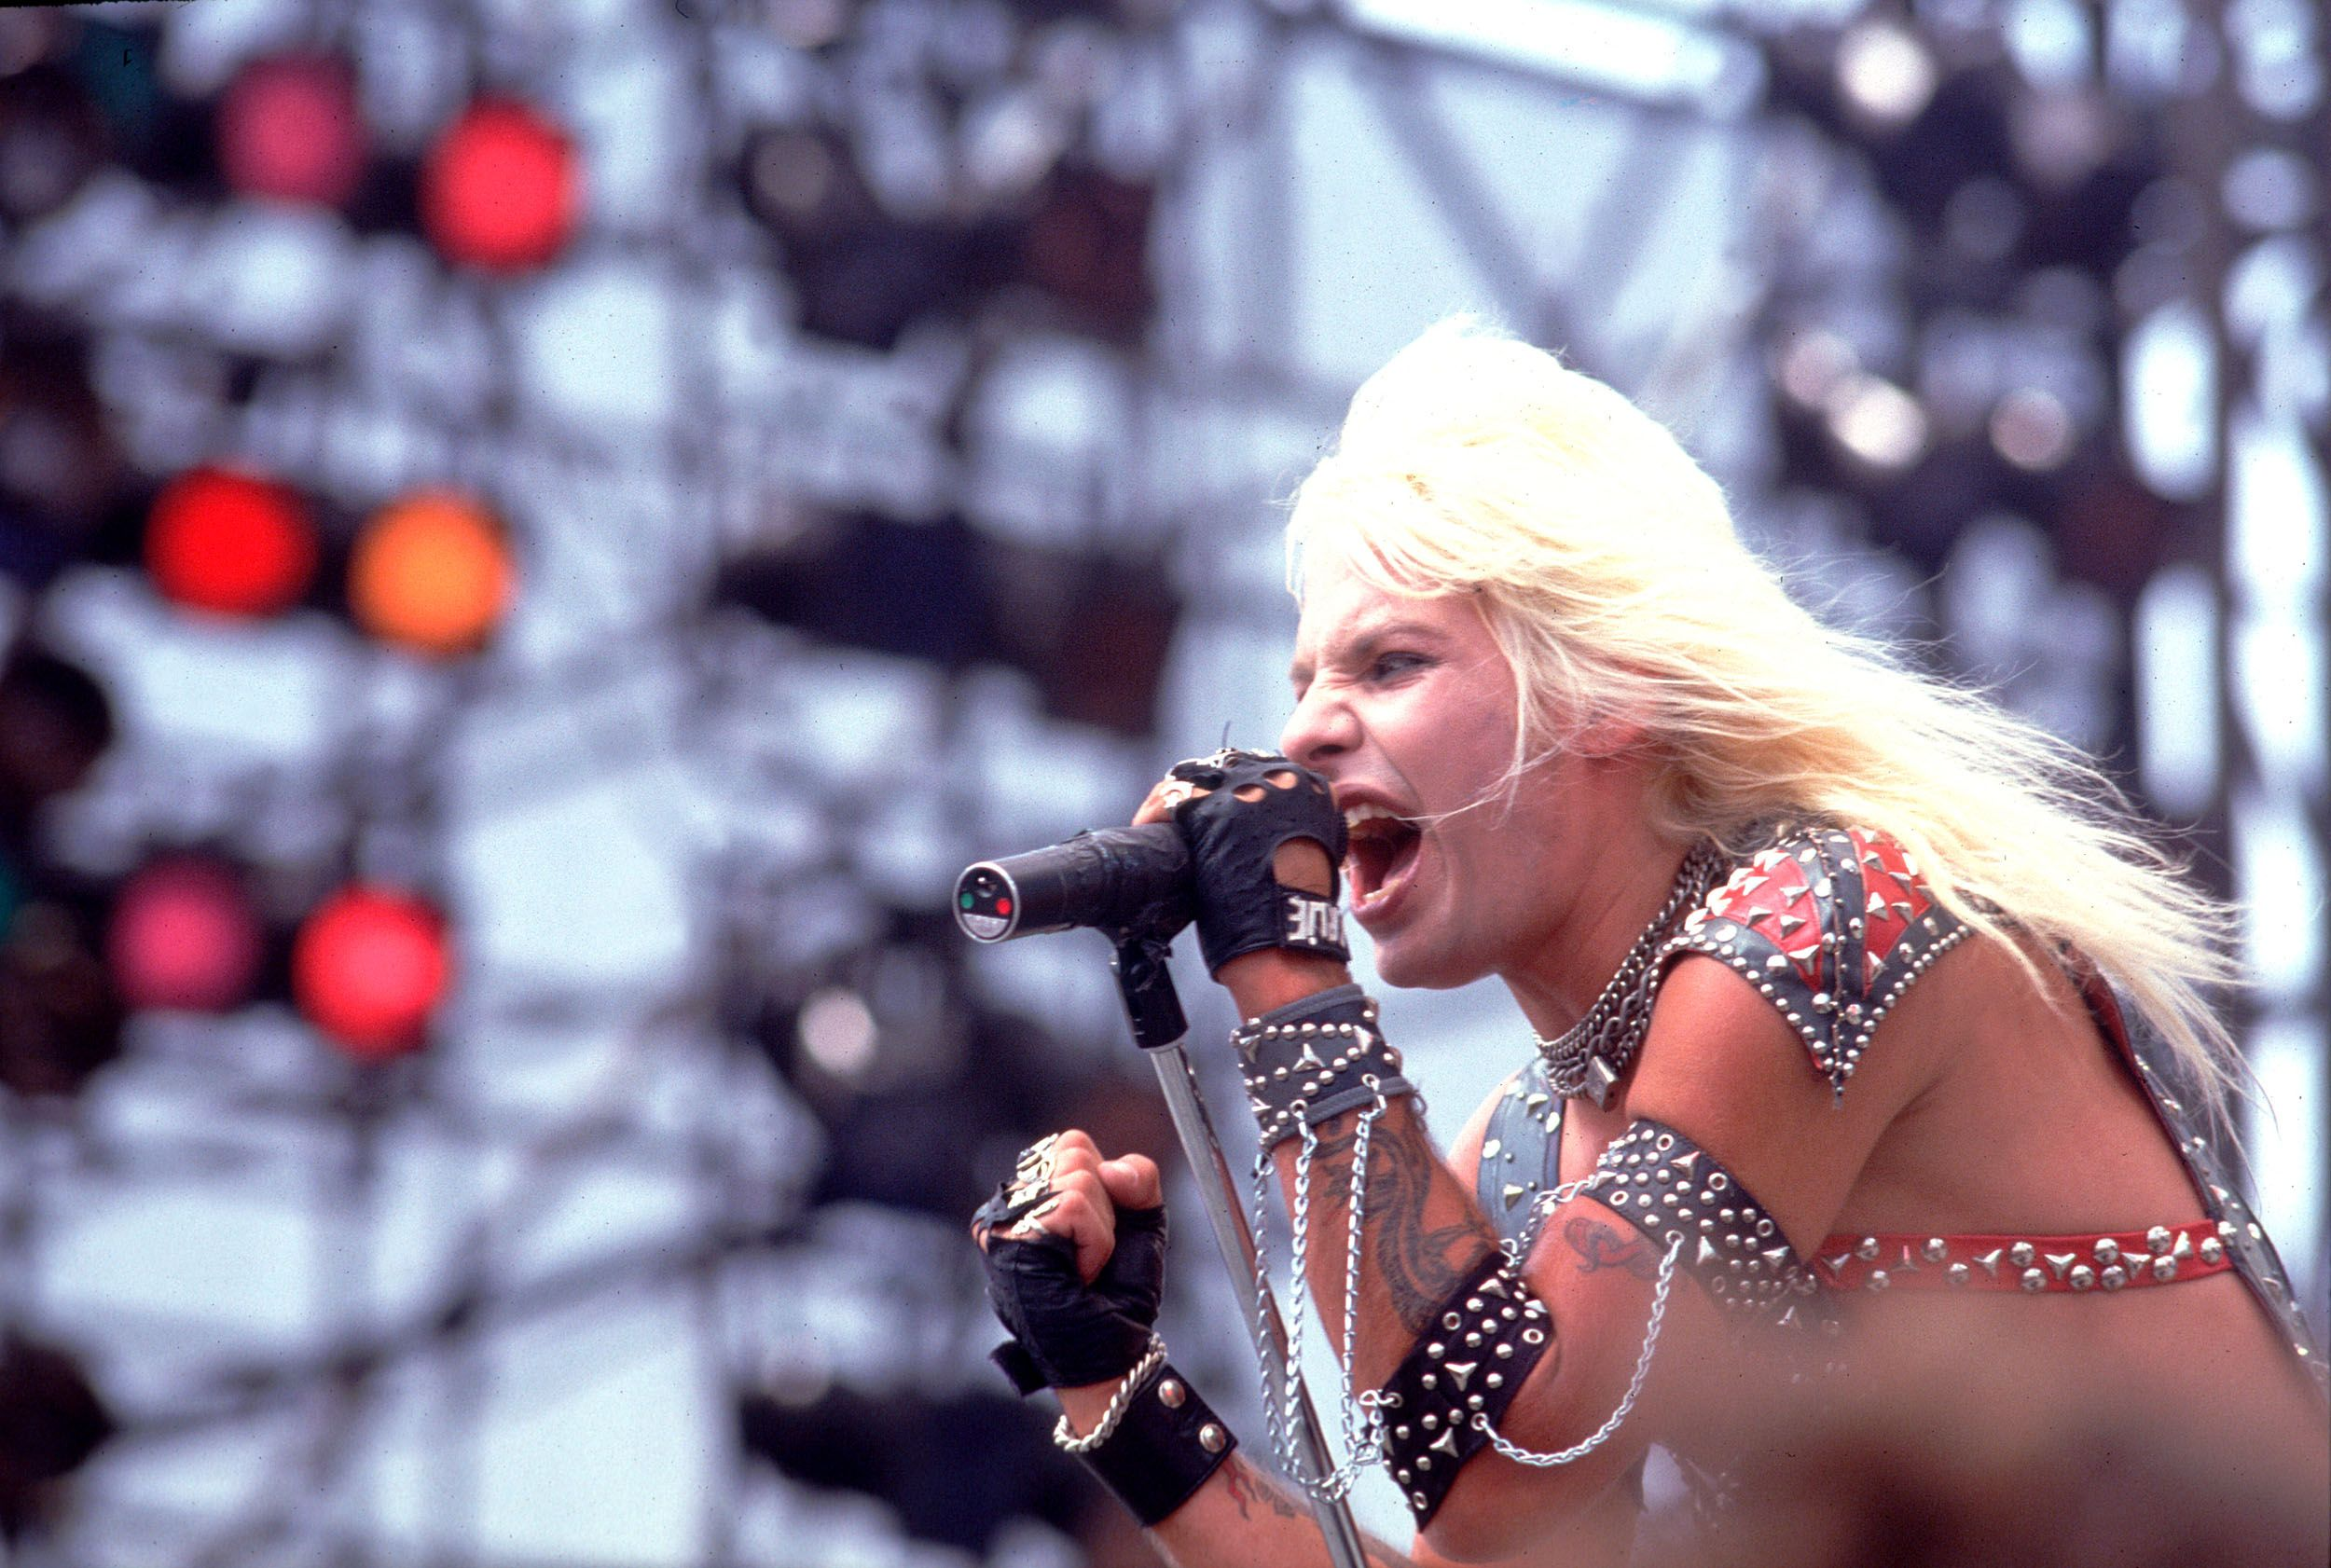 Vince Neil performs at the US Festival in Ontario, California, on May 30, 1983.